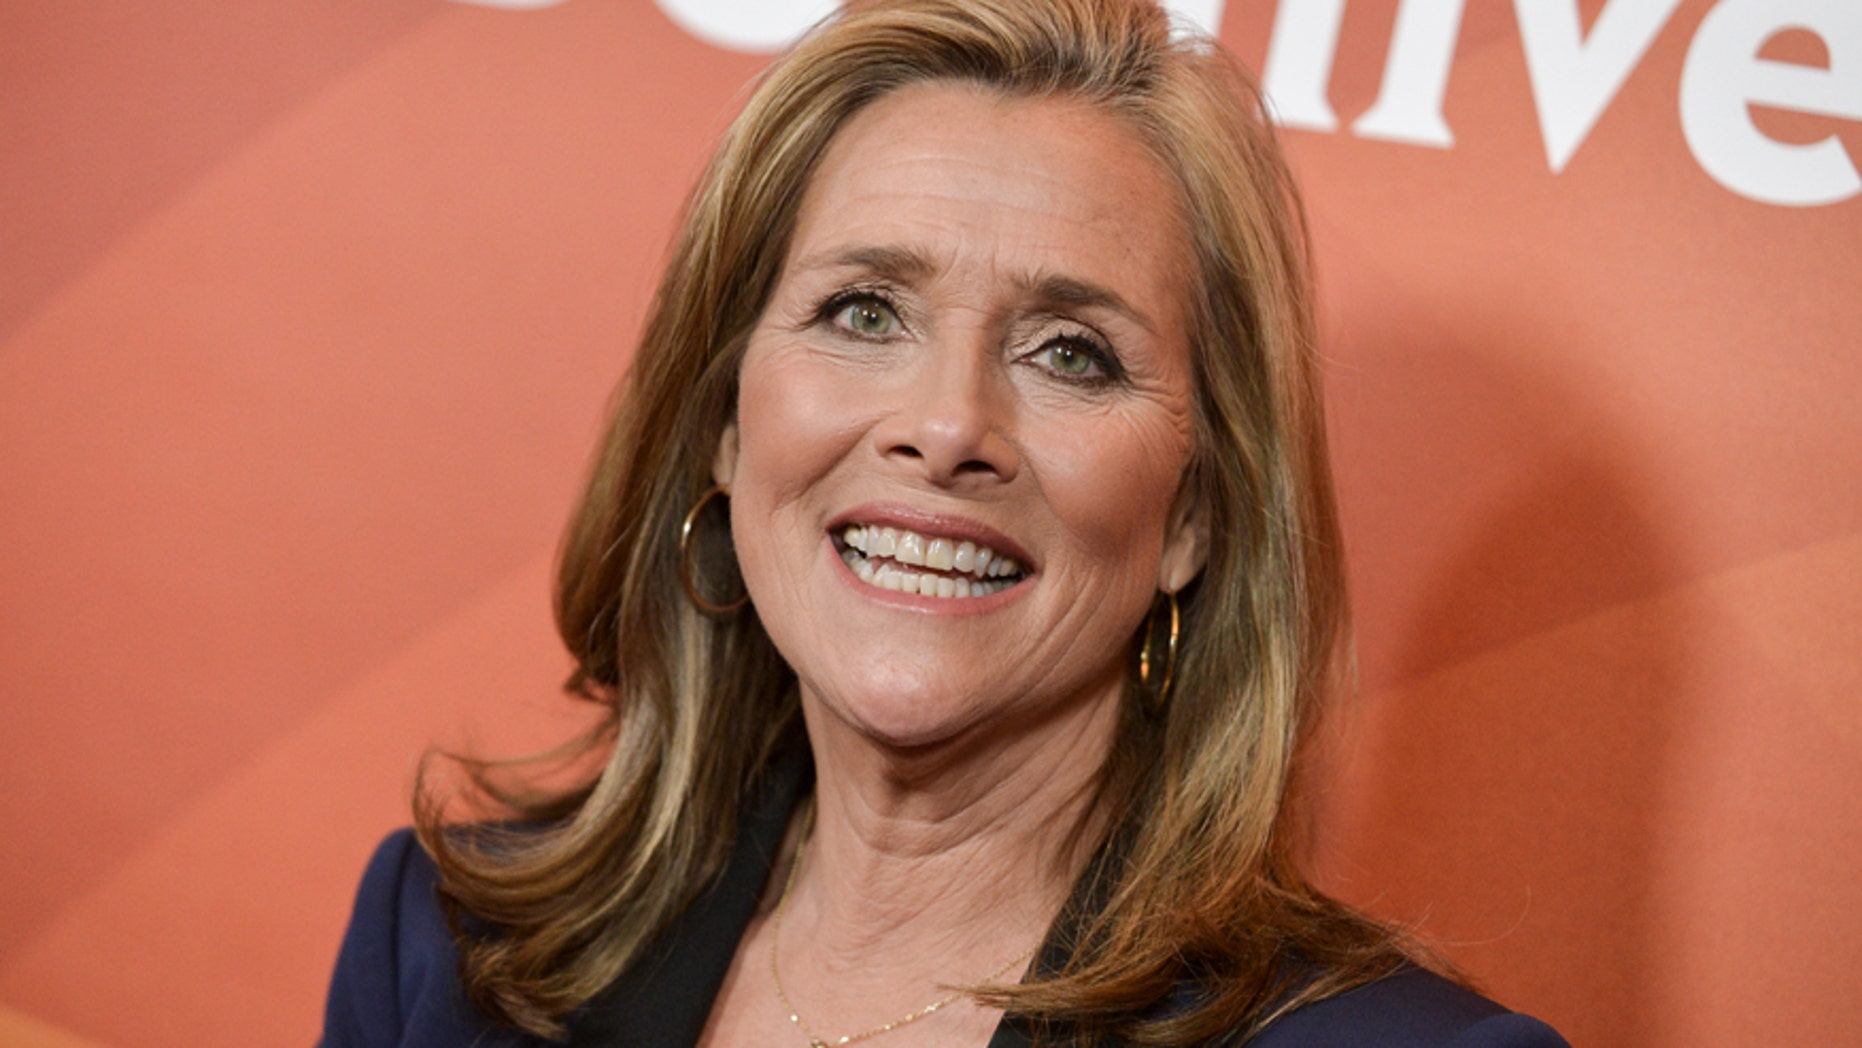 In this July 13, 2014 file photo Meredith Vieira attends the NBC 2014 Summer TCA in Beverly Hills, Calif.